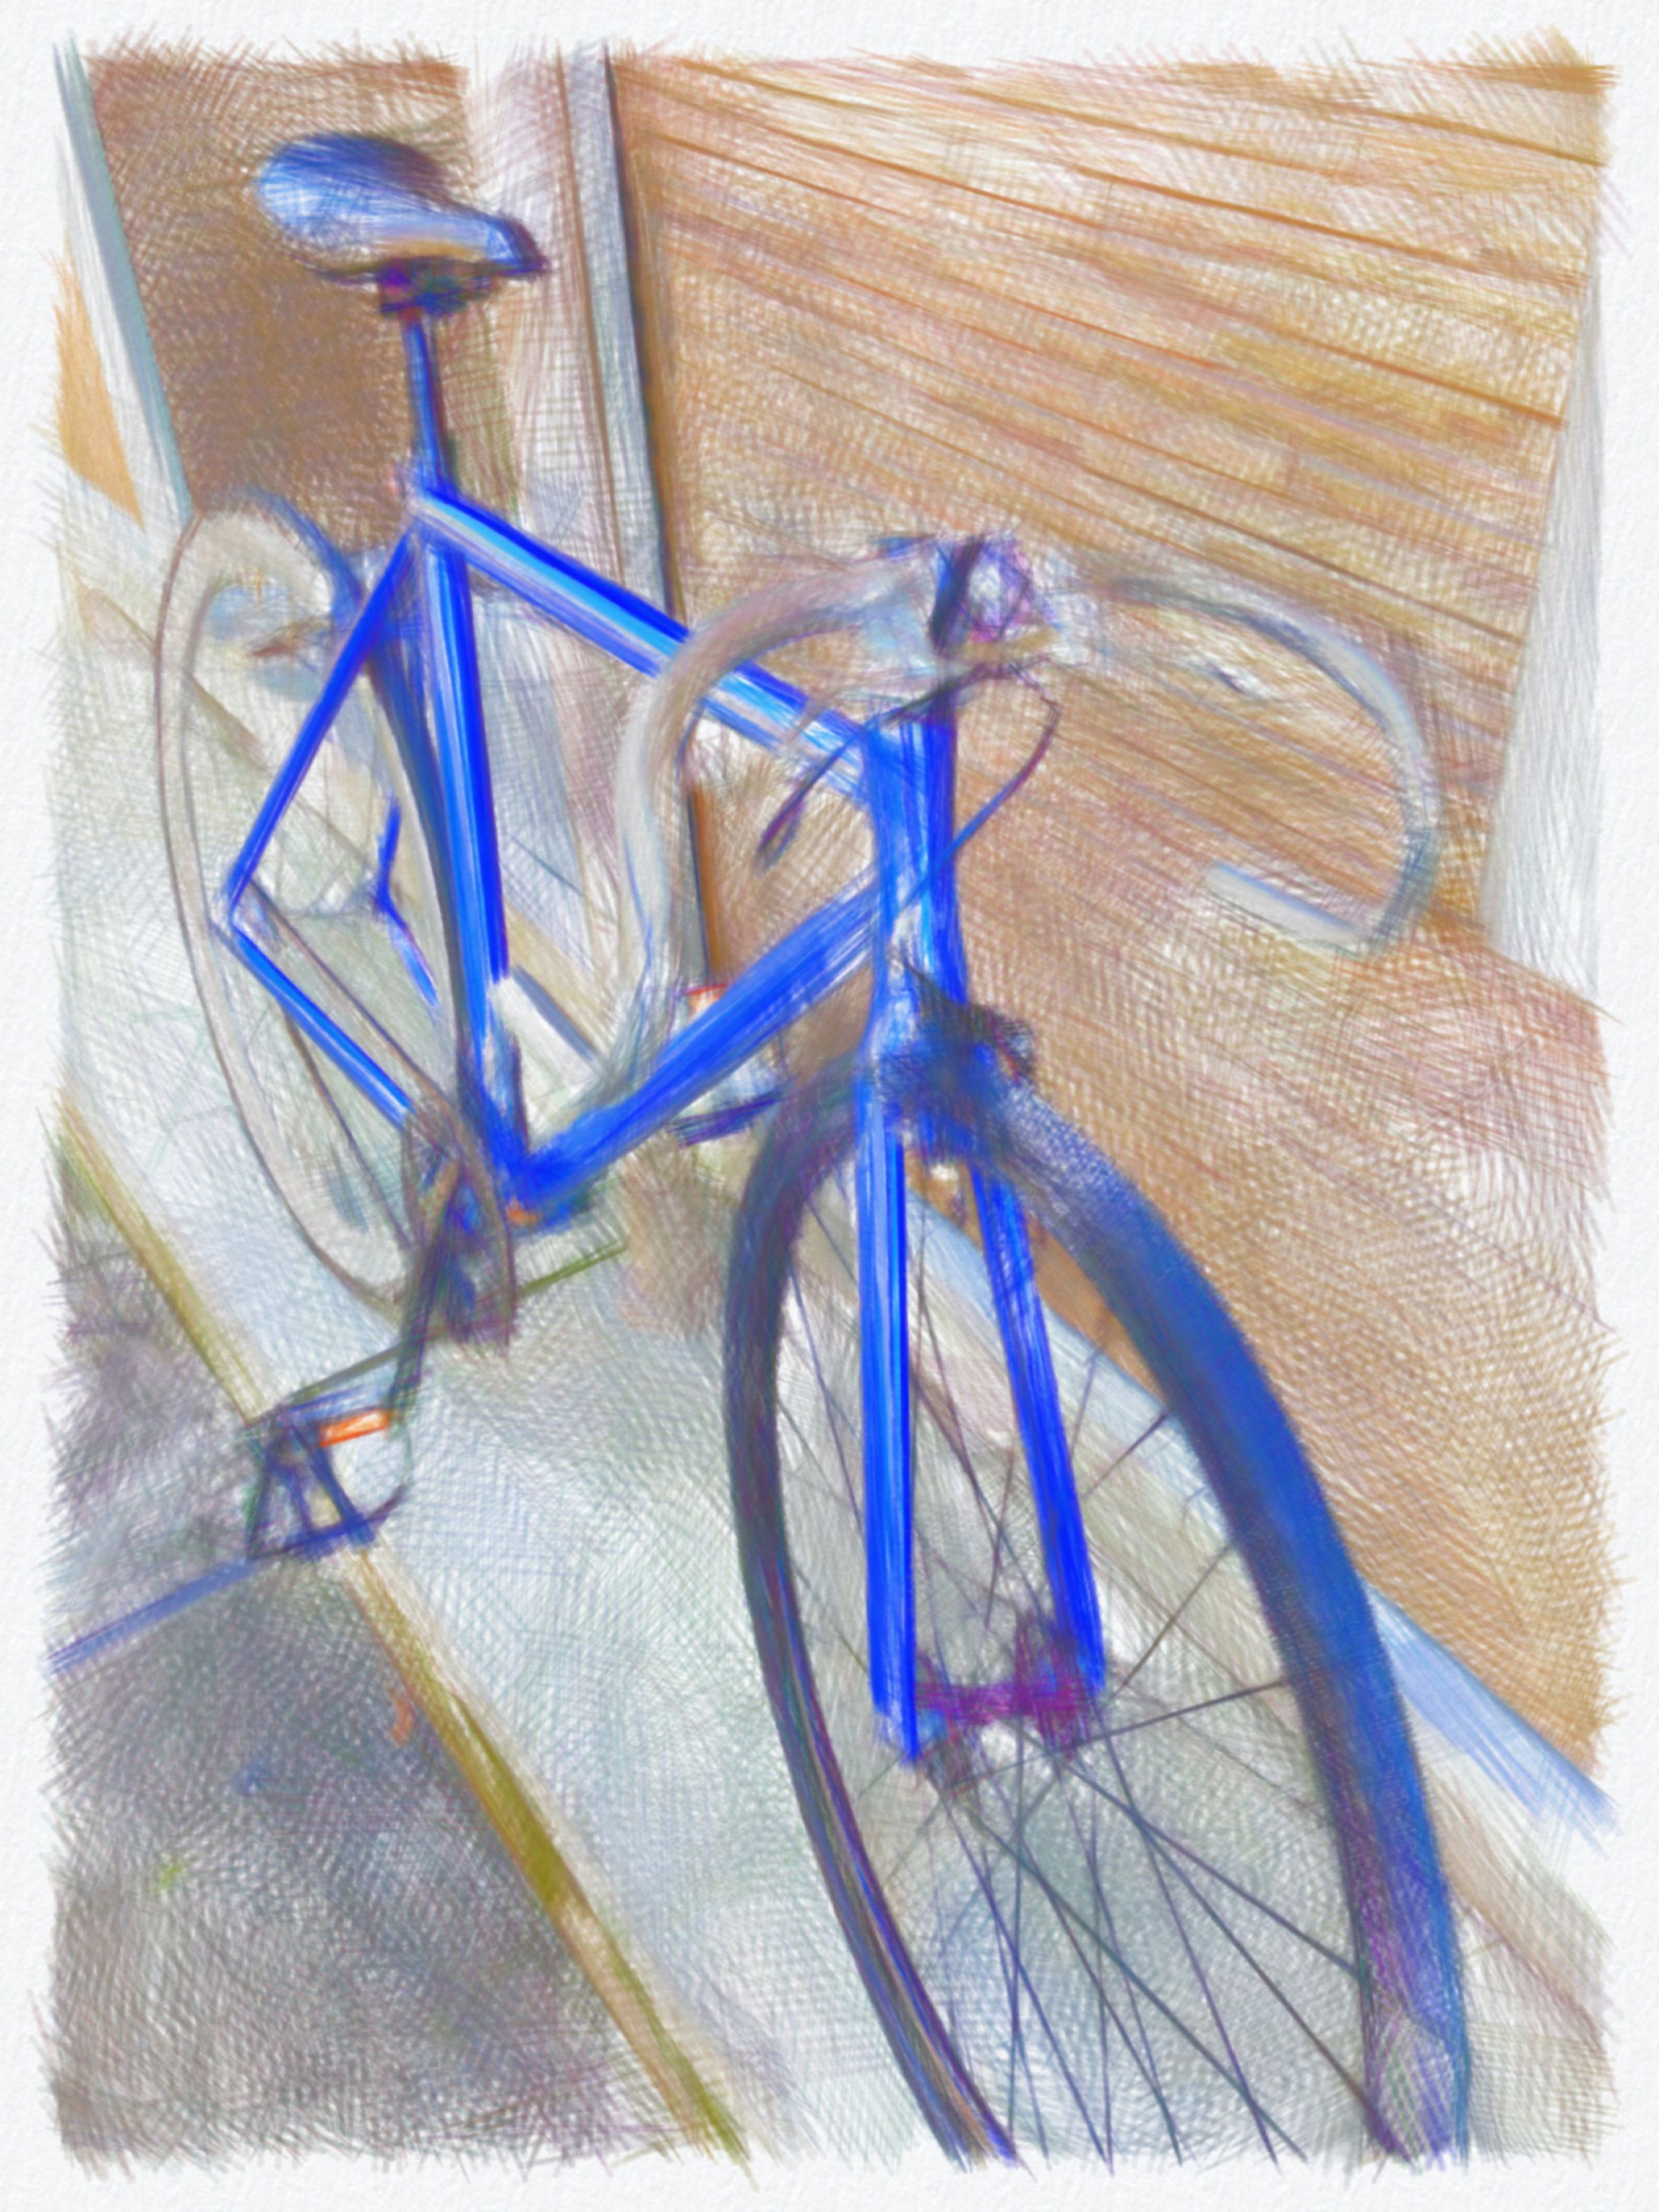 transfer print, auto post production filter, indoors, blue, bicycle, no people, high angle view, still life, art and craft, close-up, wall - building feature, day, shadow, animal representation, land vehicle, art, creativity, table, sunlight, architecture